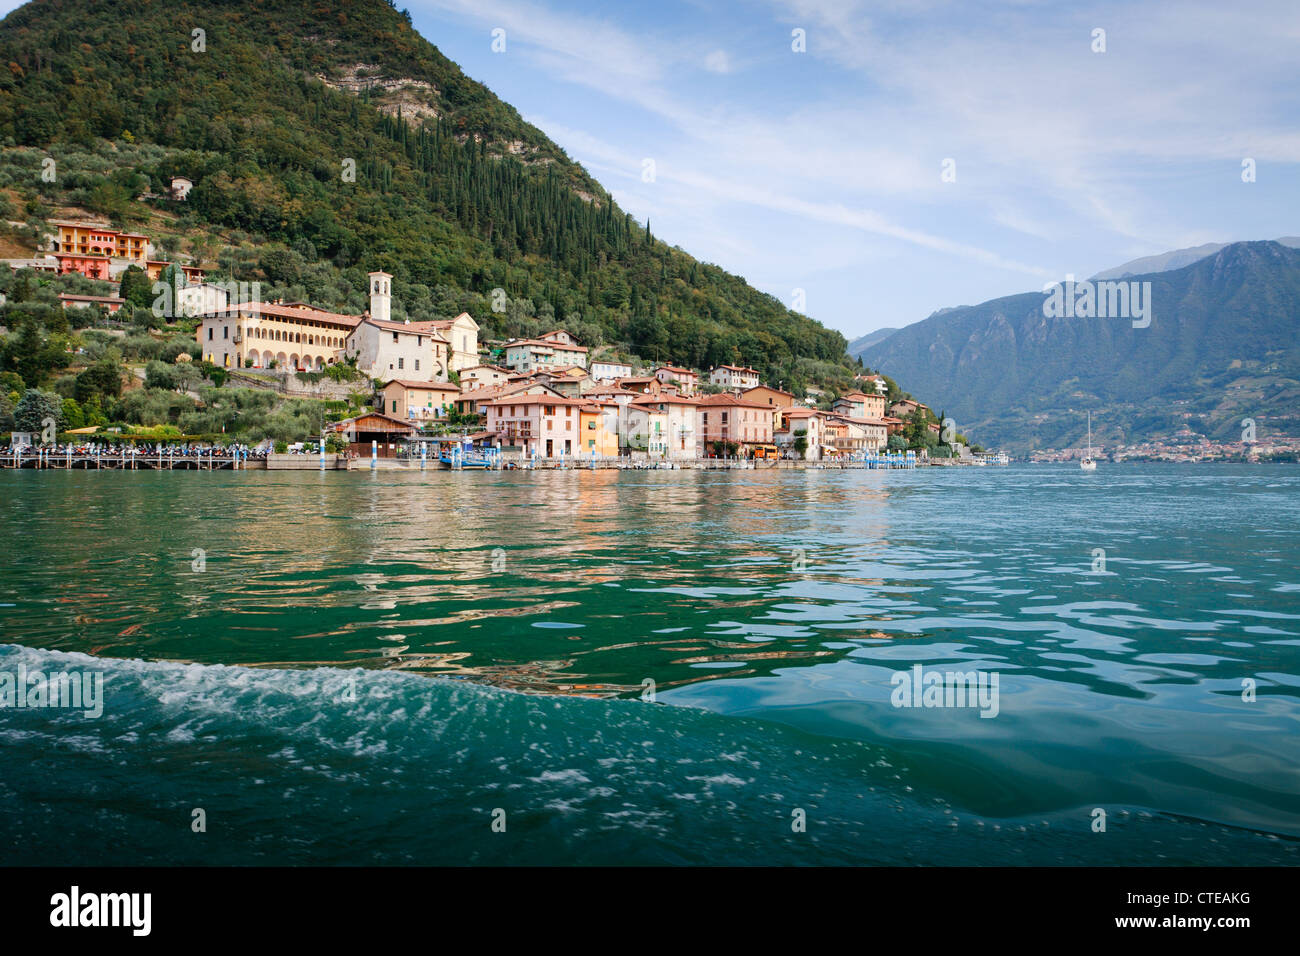 Town of Peschiera, Monte Isola, viewed from boat from Sulzano, with steep hill behind and reflection in water. - Stock Image